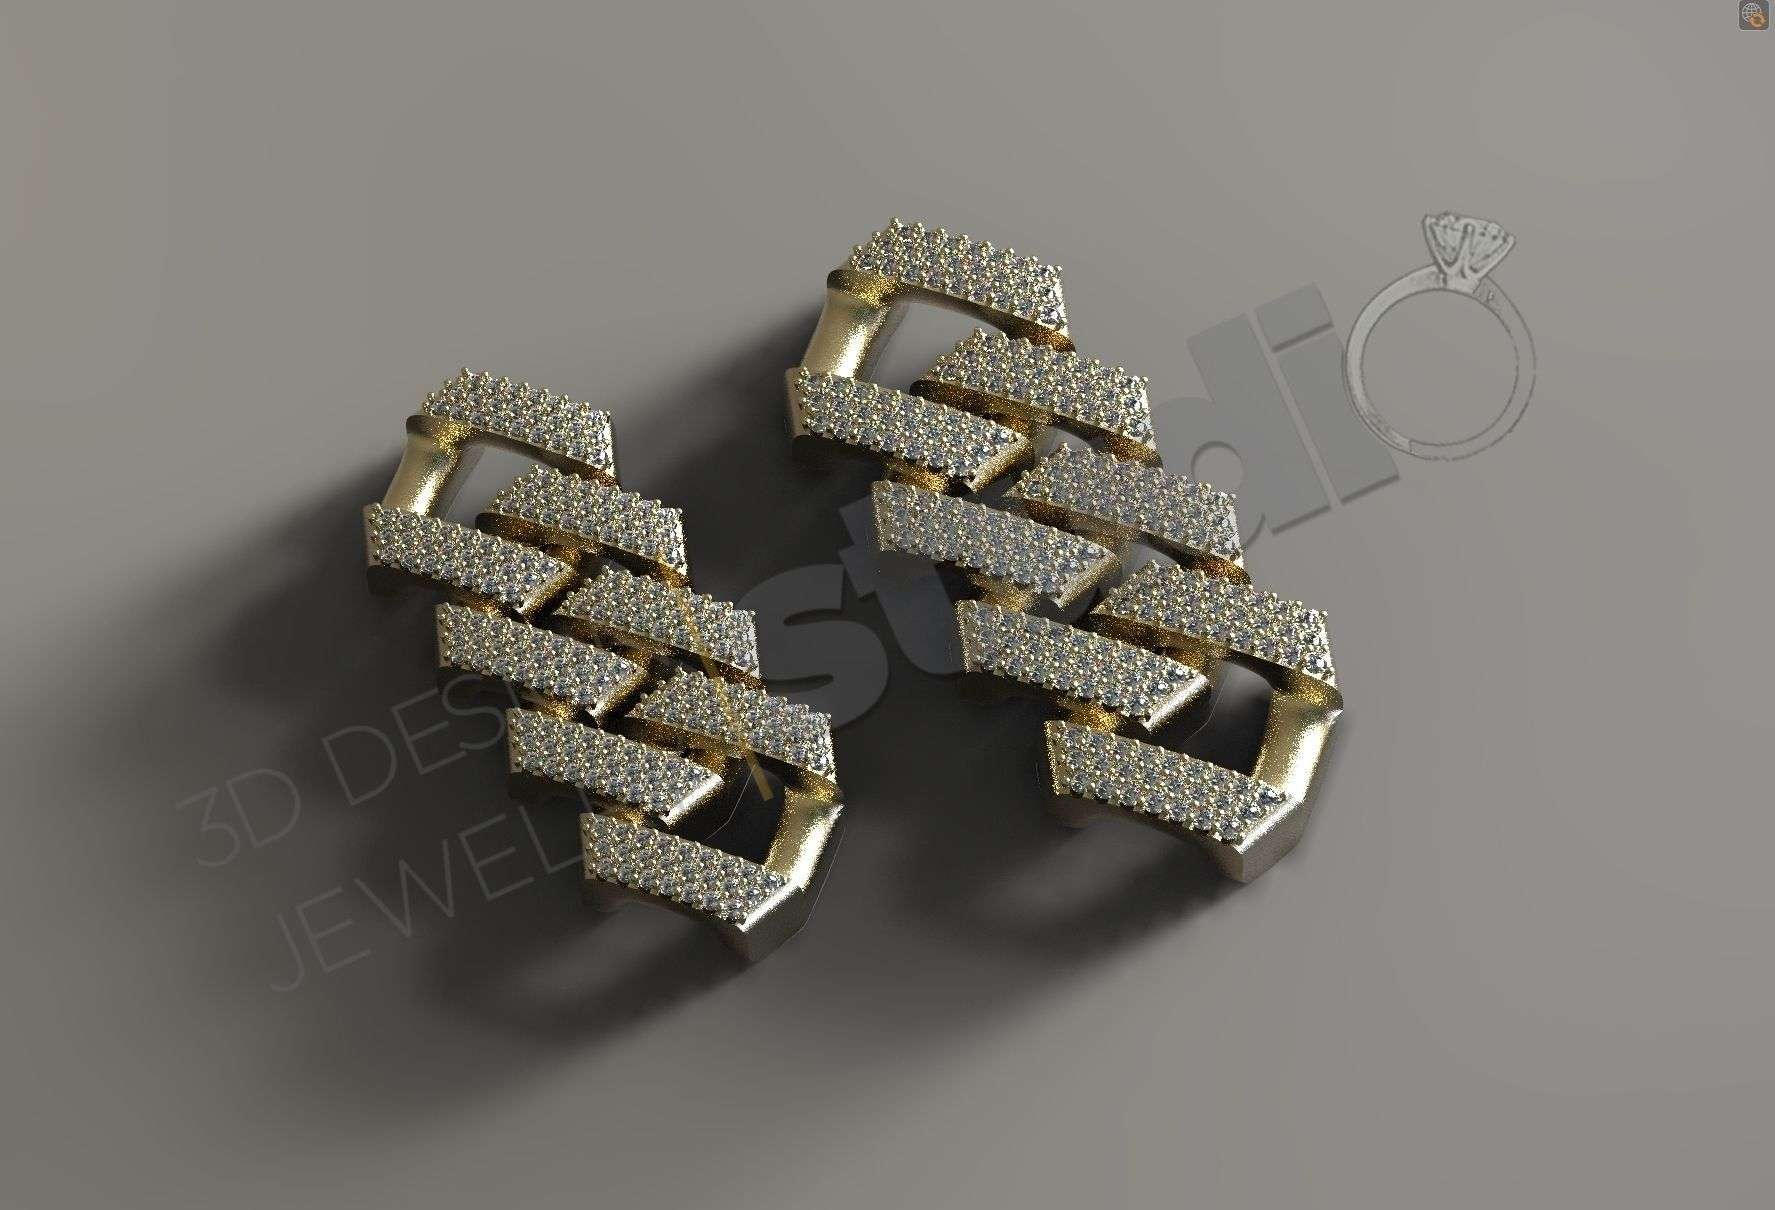 Cuban chainlink 3d model with and without stones